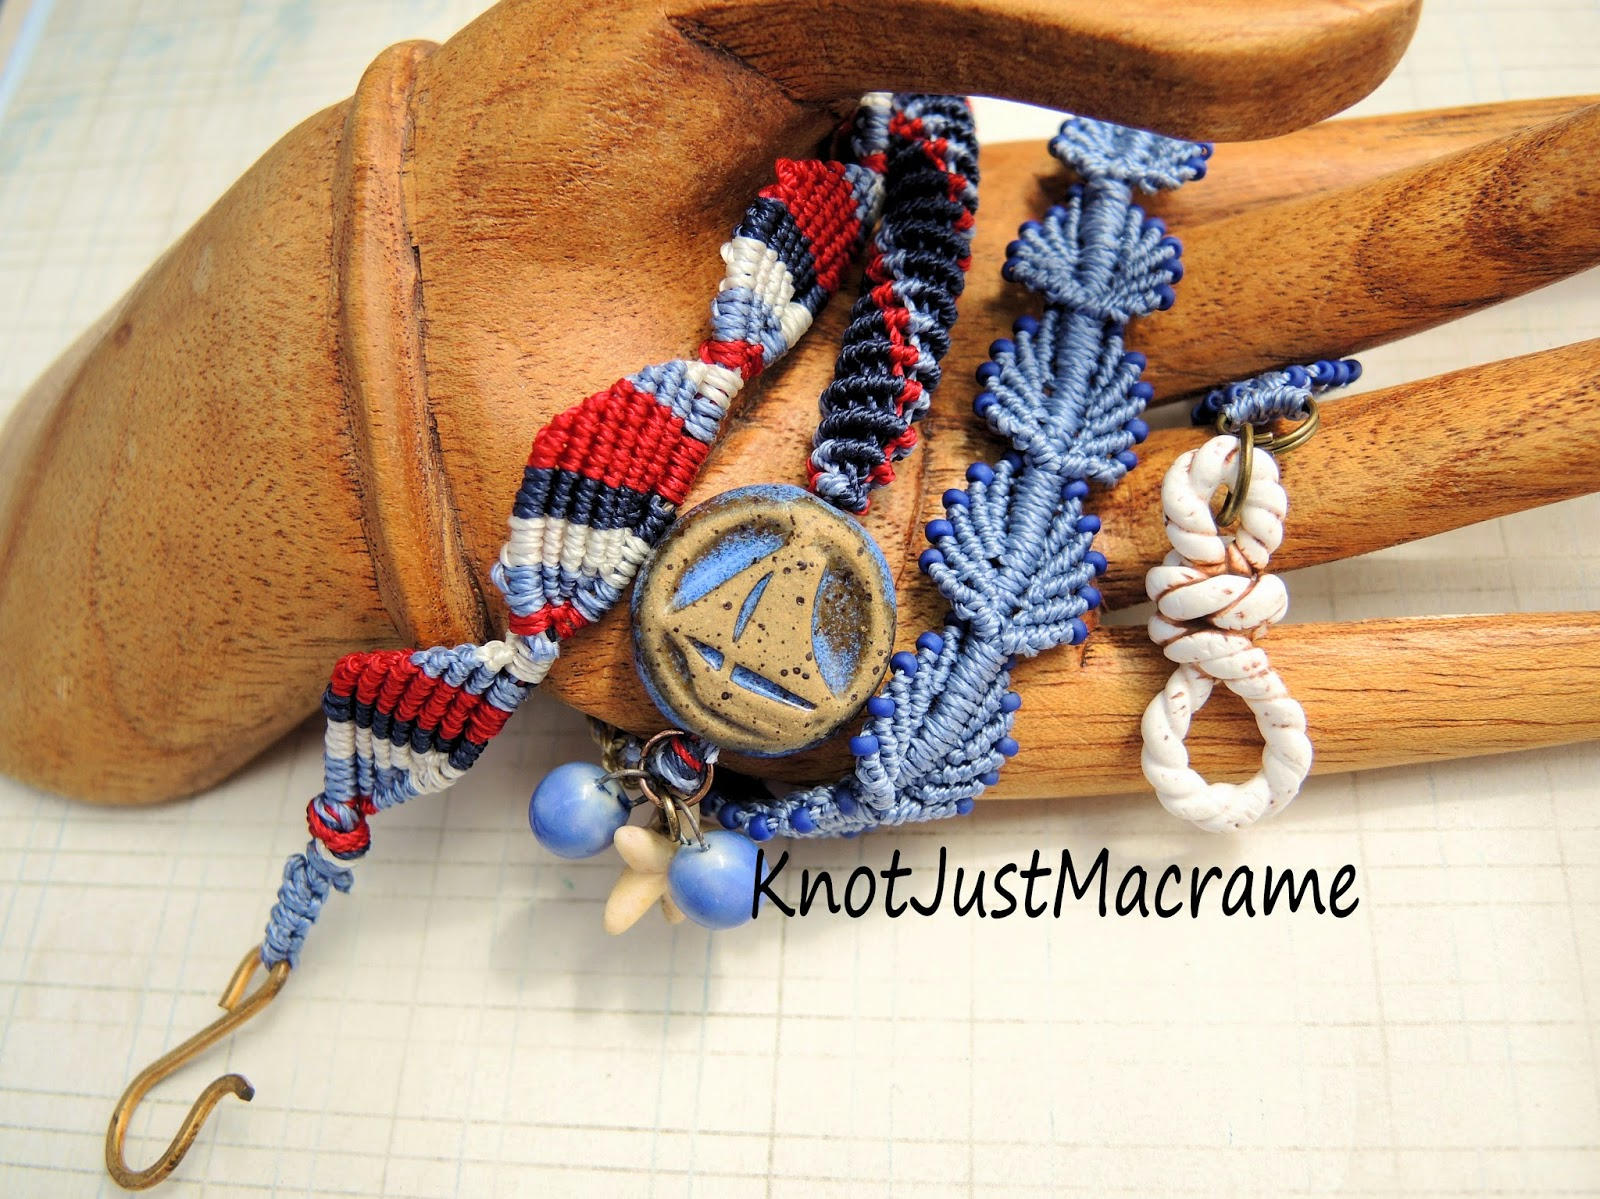 Knotted micro macrame bracelet by Knot Just Macrame with art beads by Suburban Girl Studio.